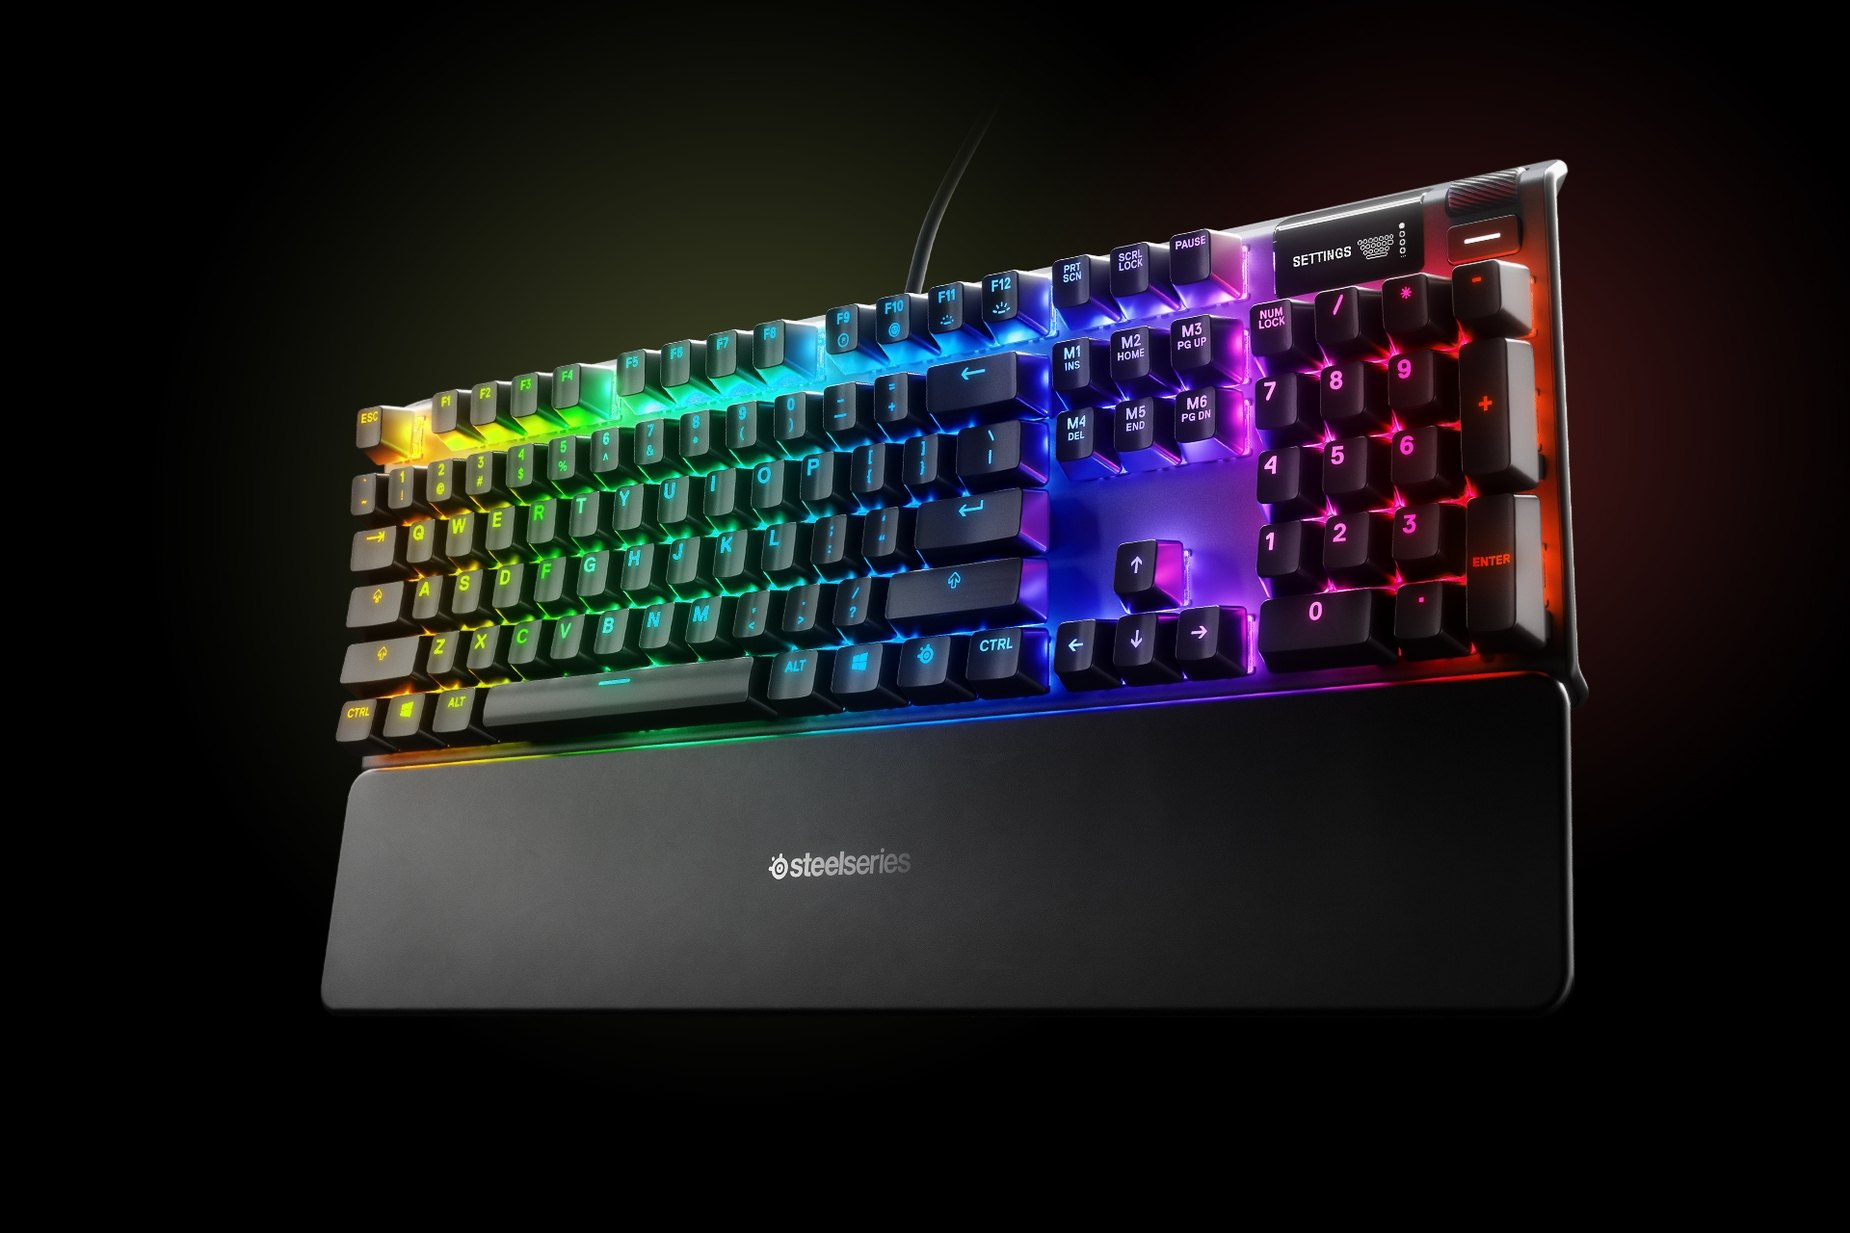 German - Apex 7 (Brown Switch) gaming keyboard with the illumination lit up on dark background, also shows the OLED screen and controls used to change settings and adjust audio